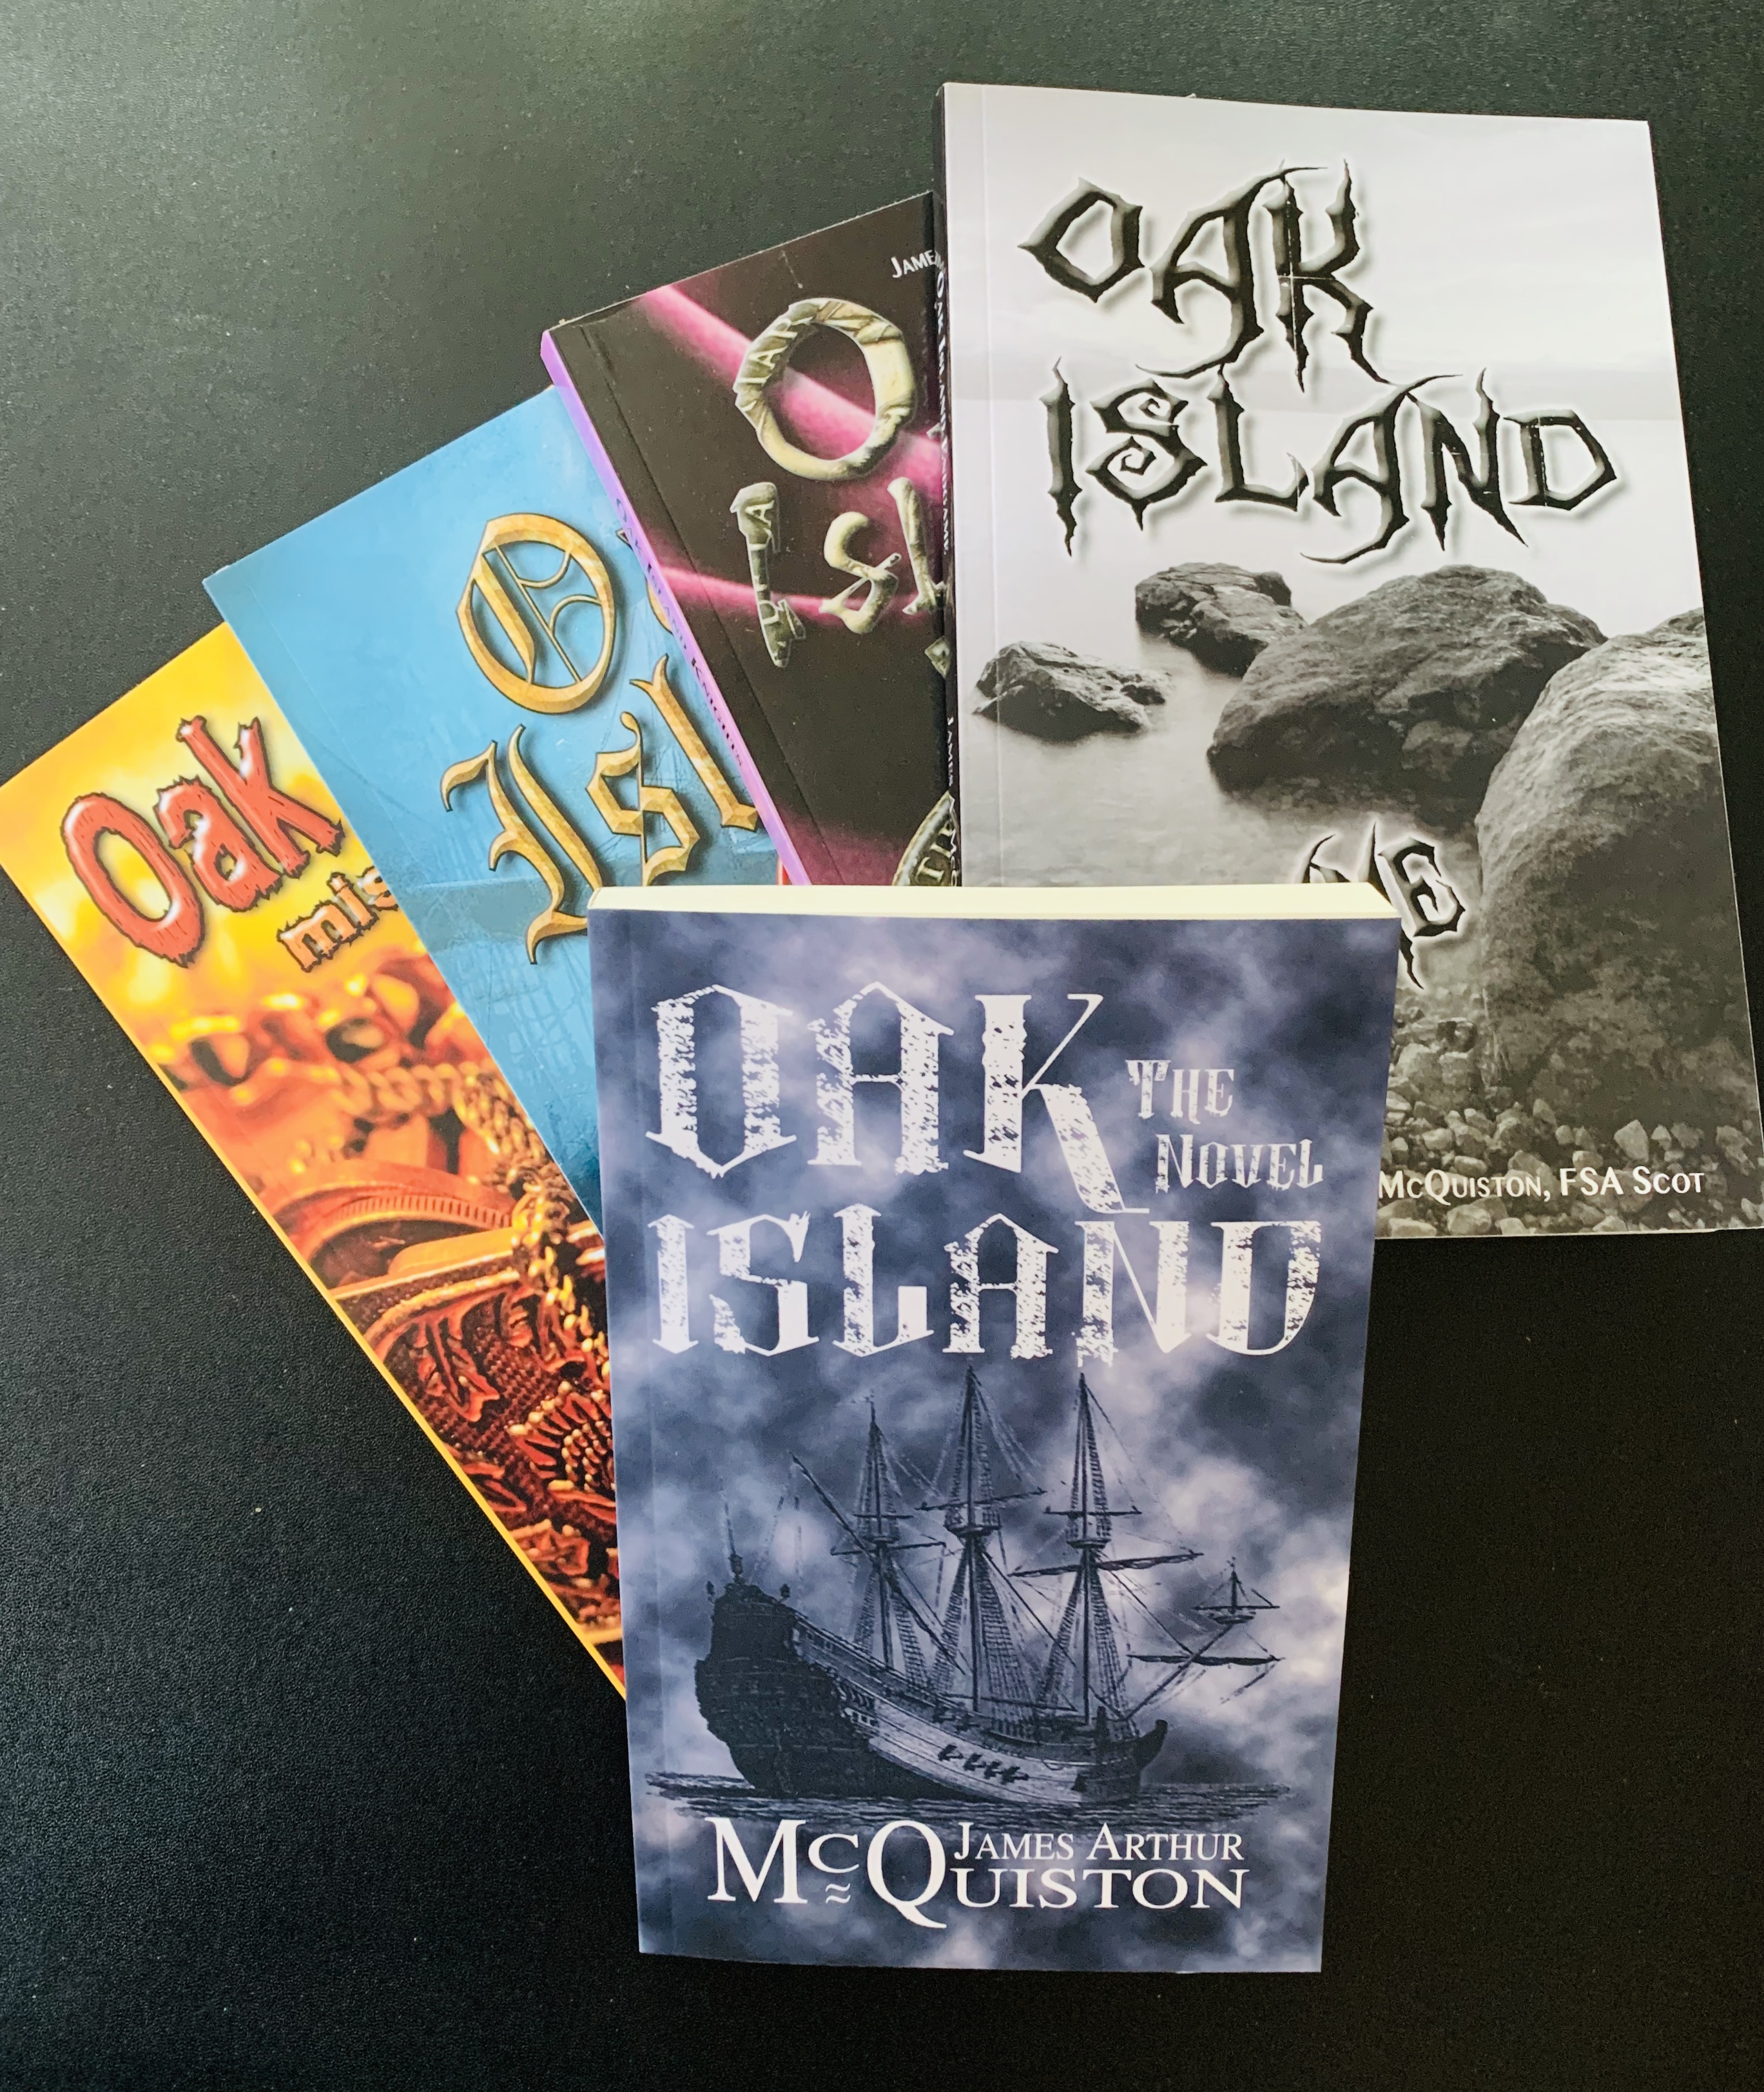 Oak Island - James McQuiston books